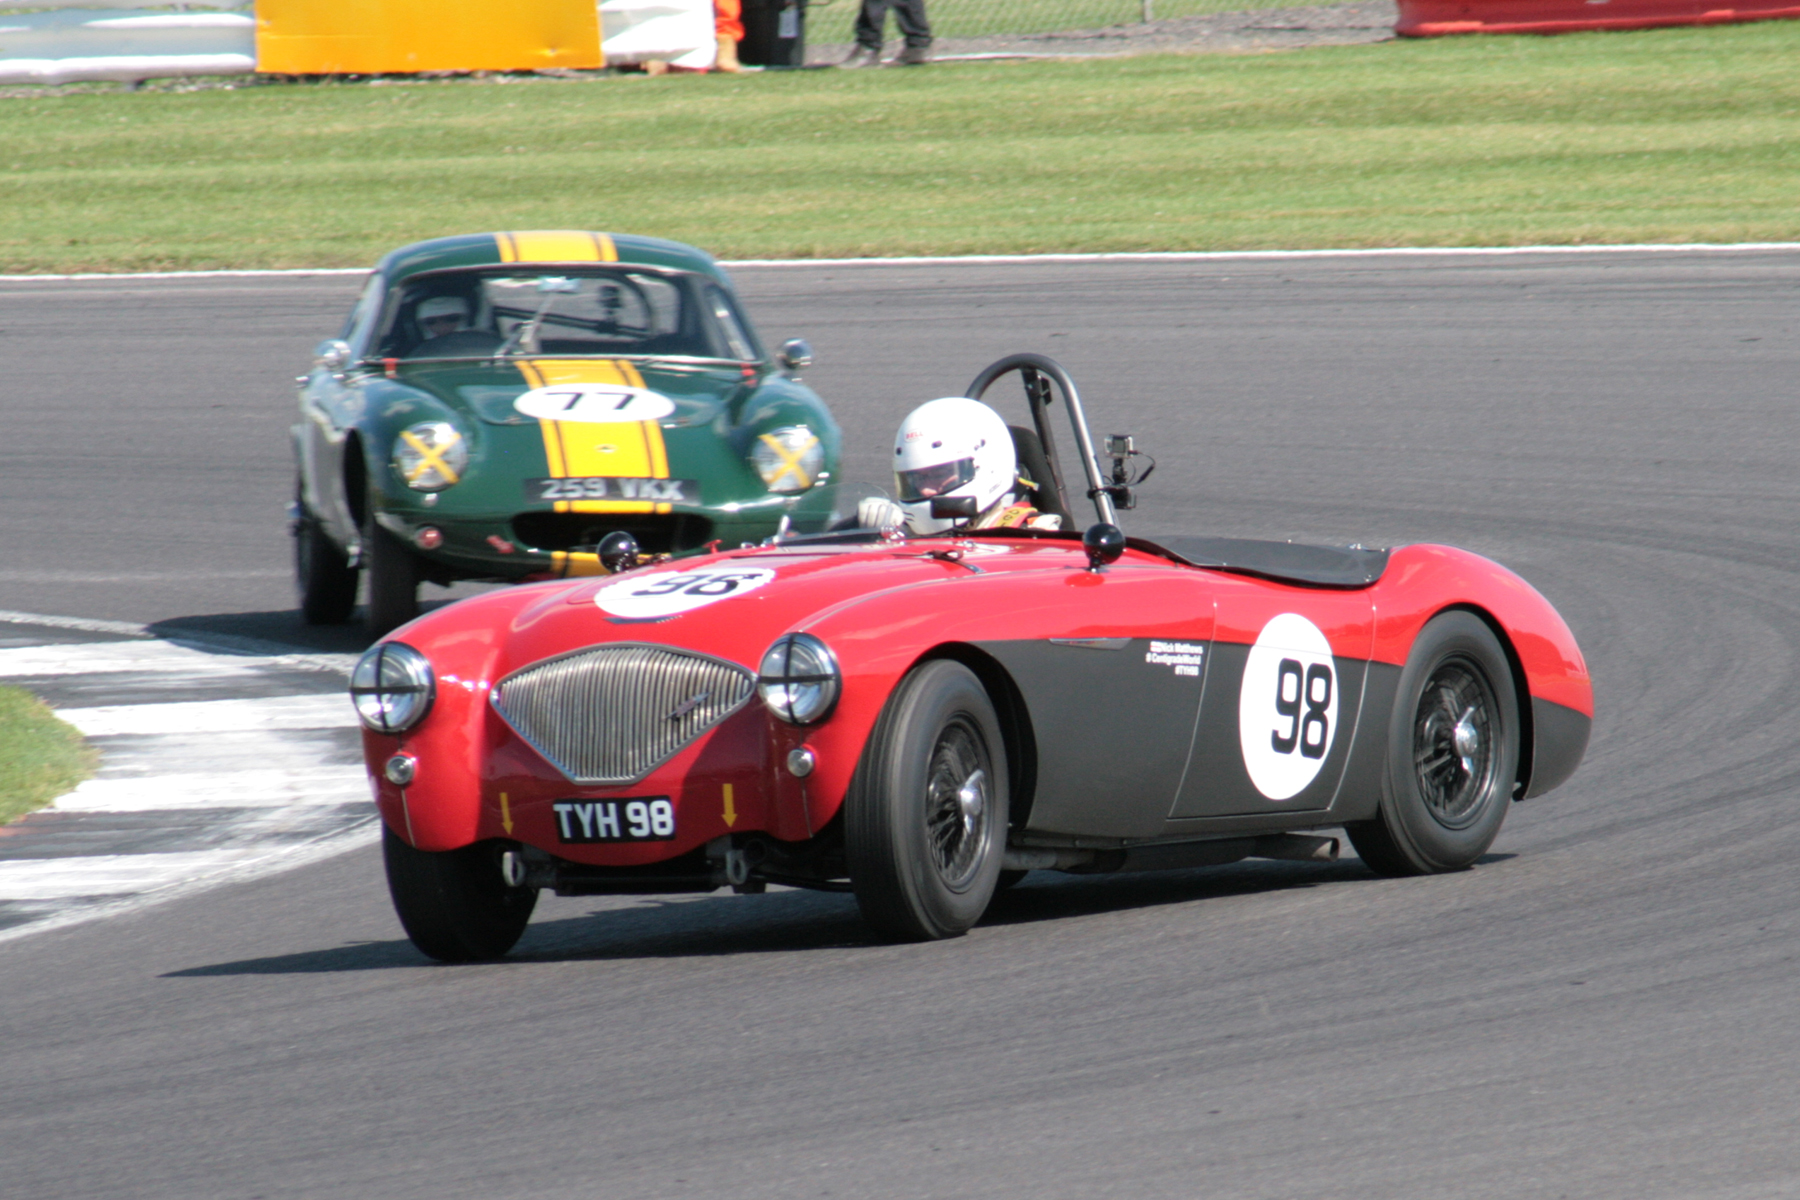 Nick Matthews opposite locking in Luffield in his battle with Mike Freeman before their pit stops  Photo - John Turner